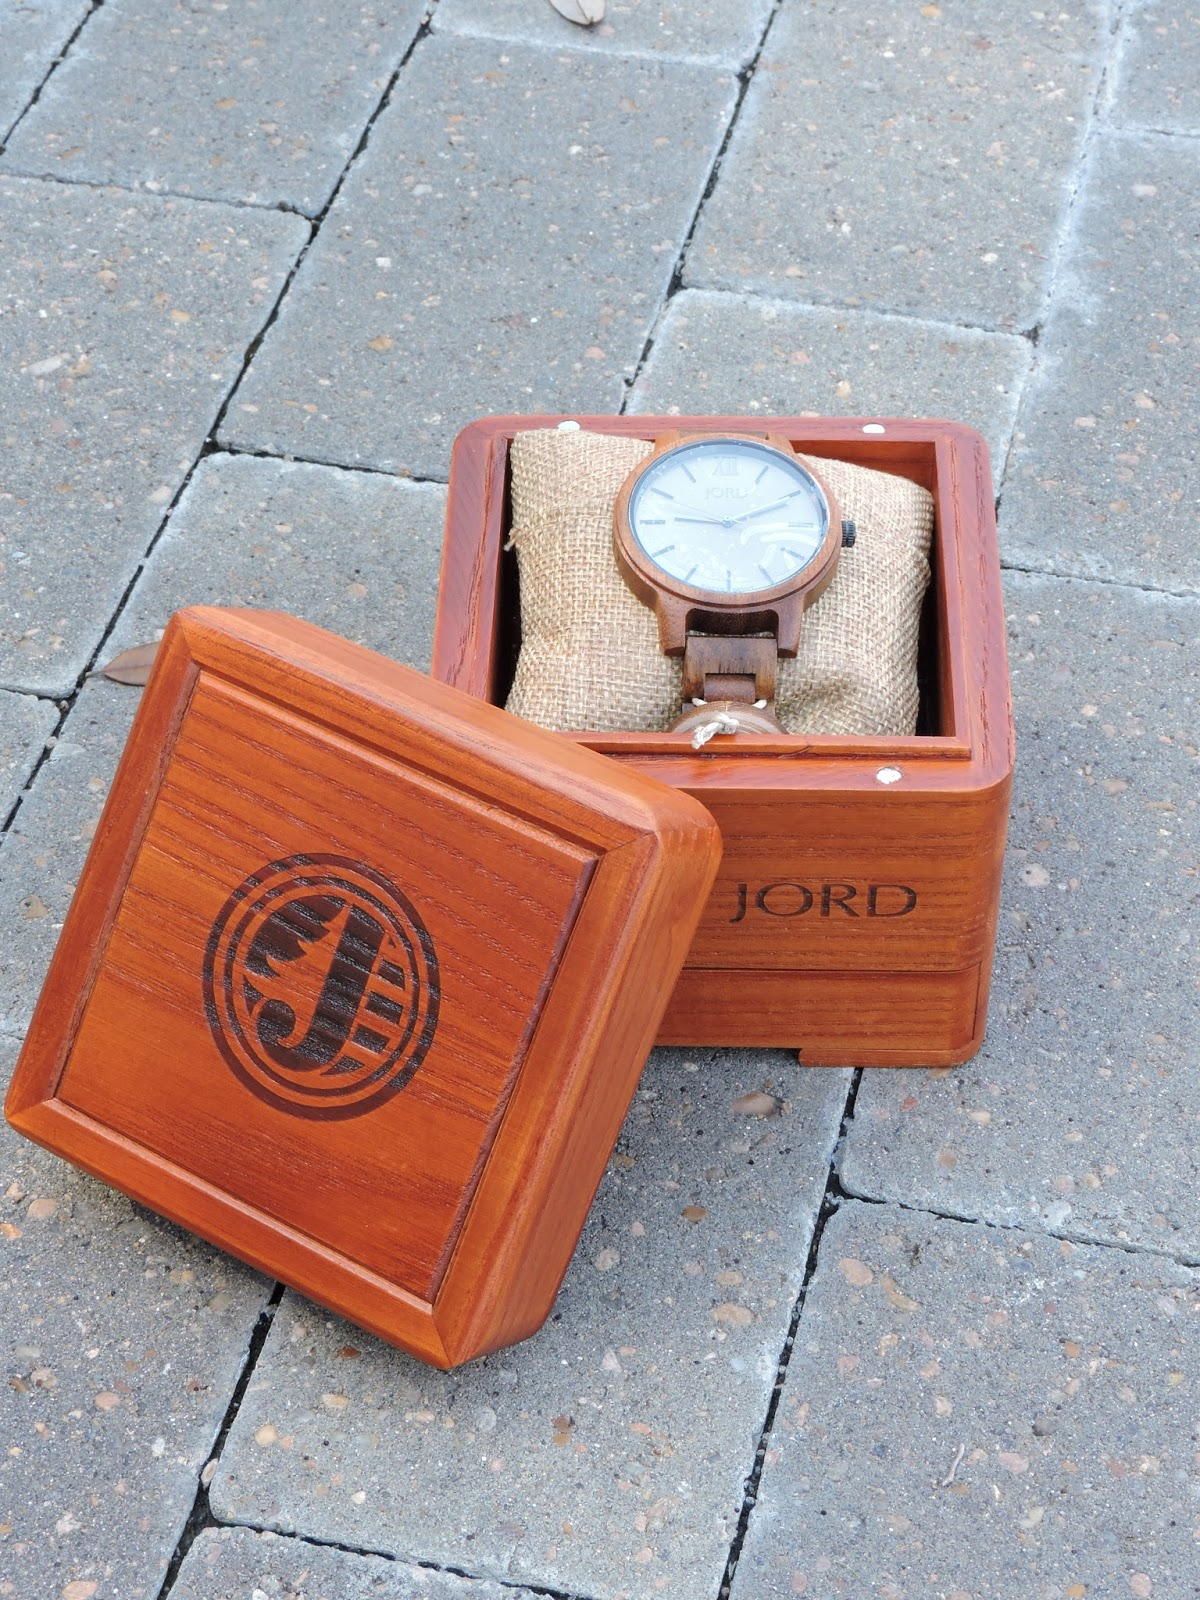 Holiday Gift Guide for Him featuring JORD Watches